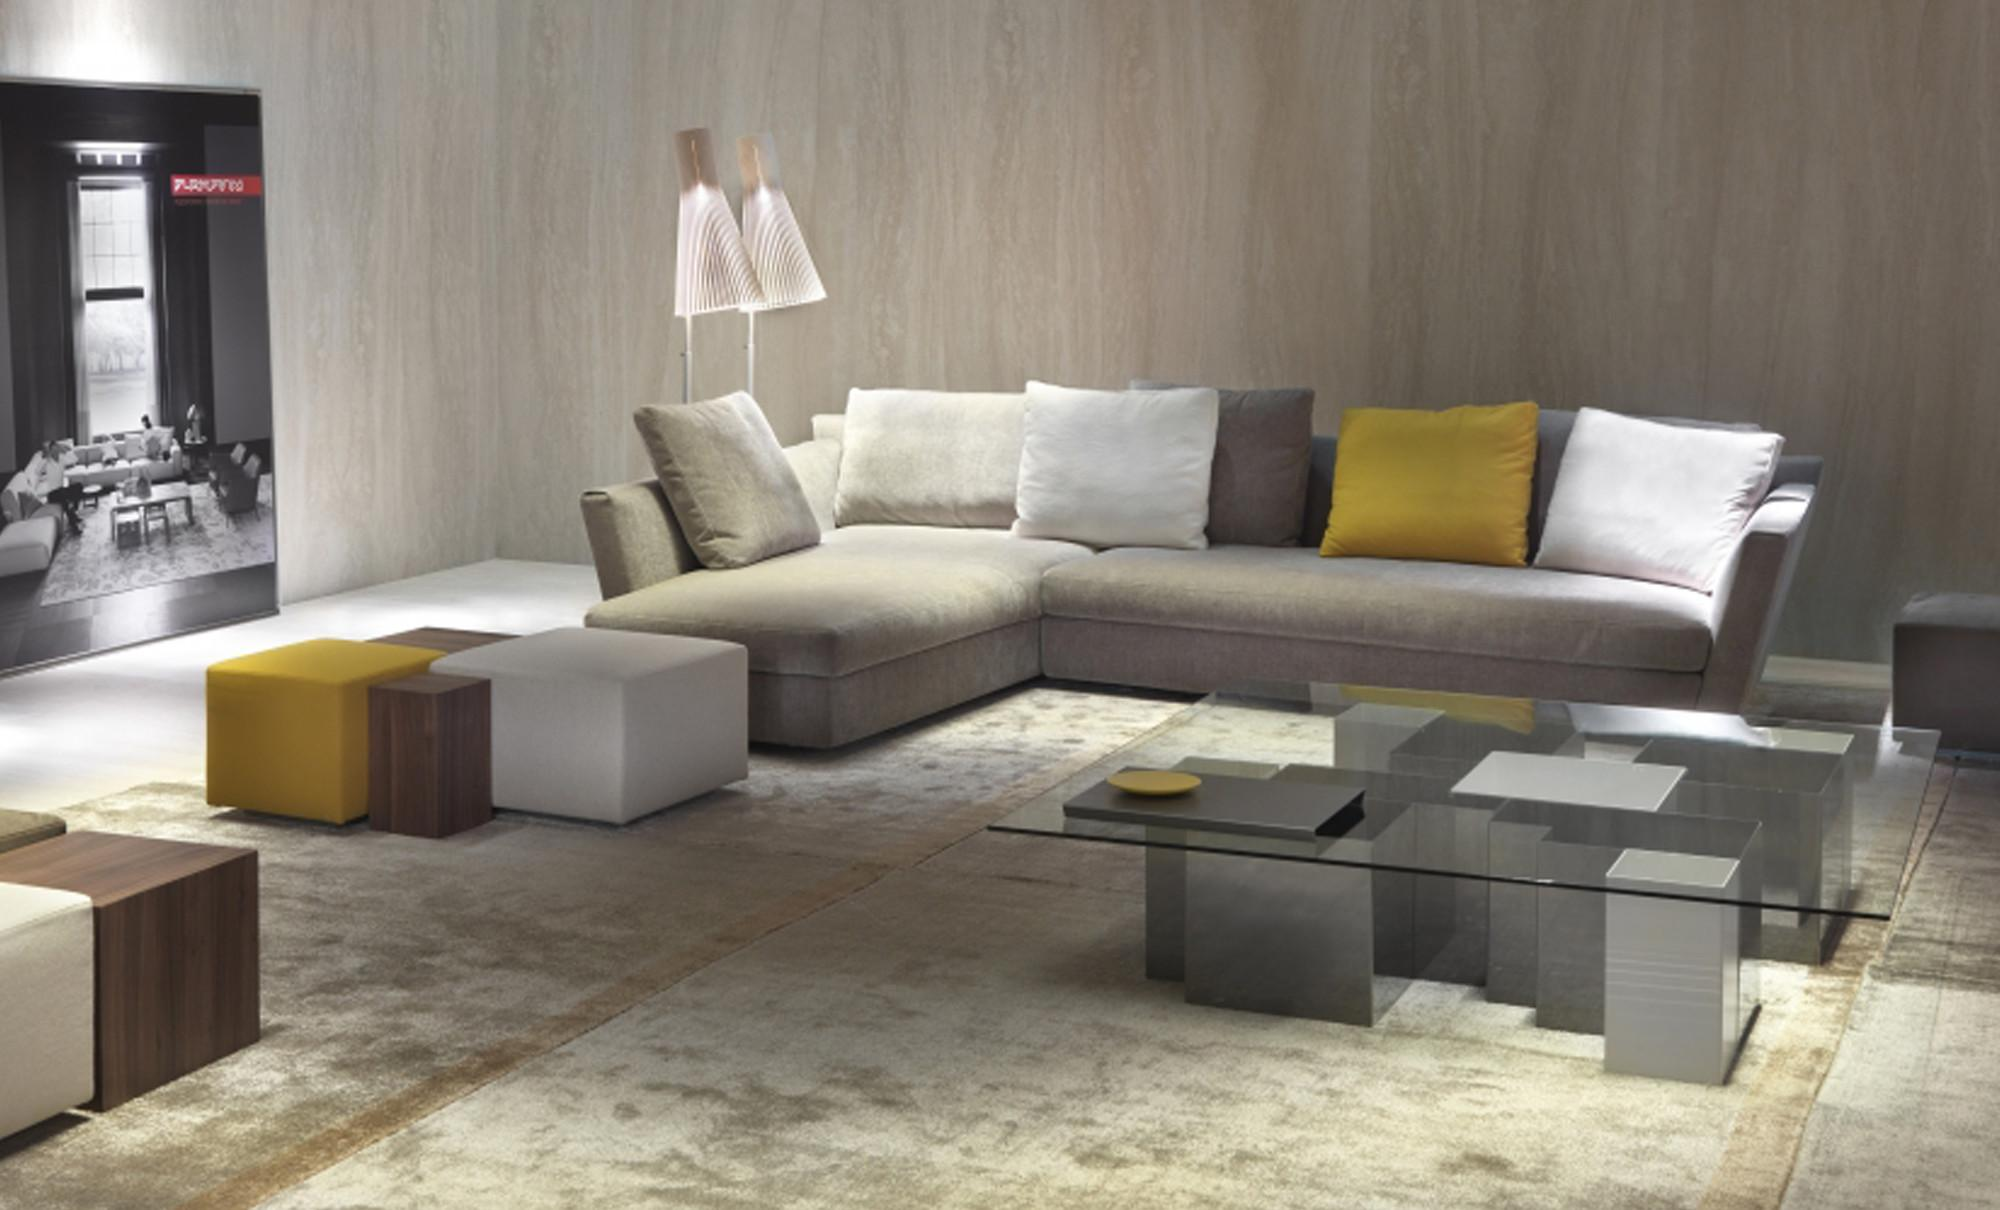 Adagio Modular Sofa Fanuli Furniture